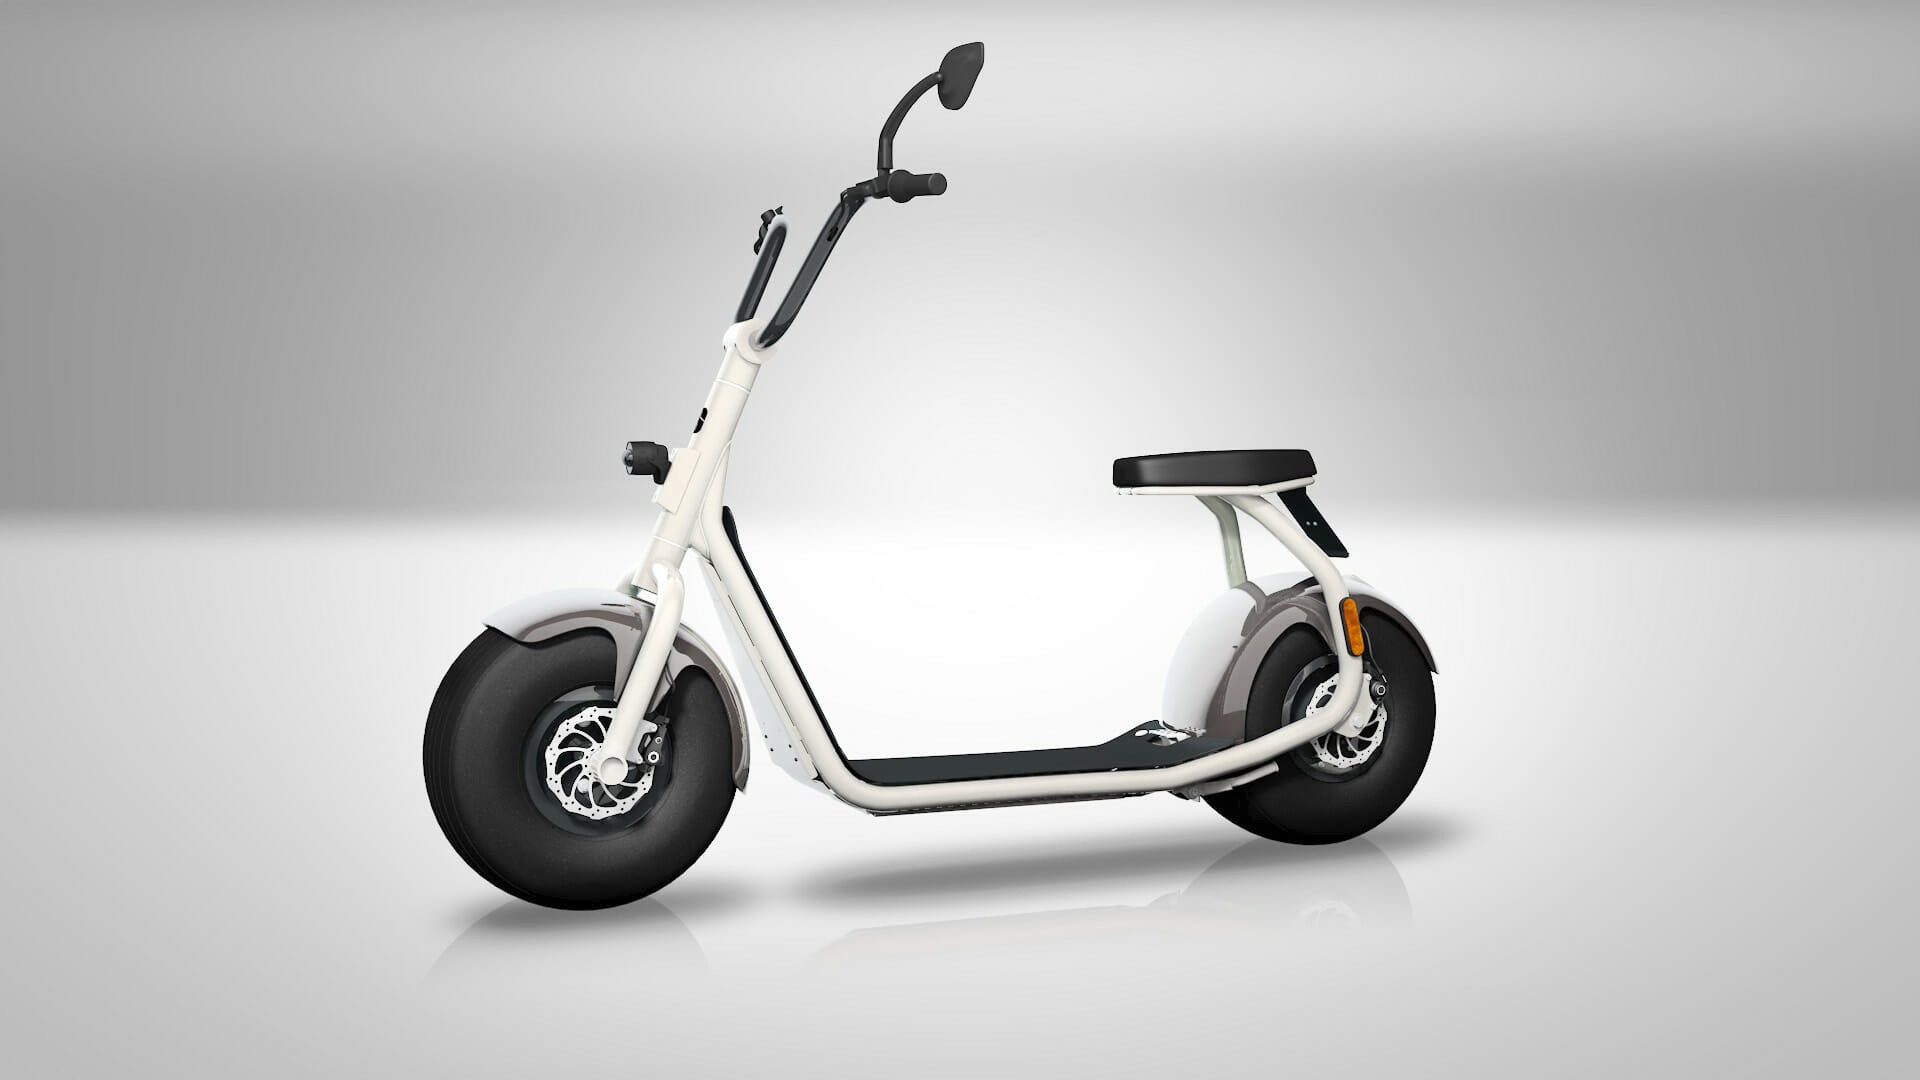 Used 2018 Scrooser ELECTRIC SCOOTER SELF BALANCED / 15.5 MPH / 34MI RANGE - CHOOSE YOUR COLOR for sale Sold at Formula Imports in Charlotte NC 28227 28